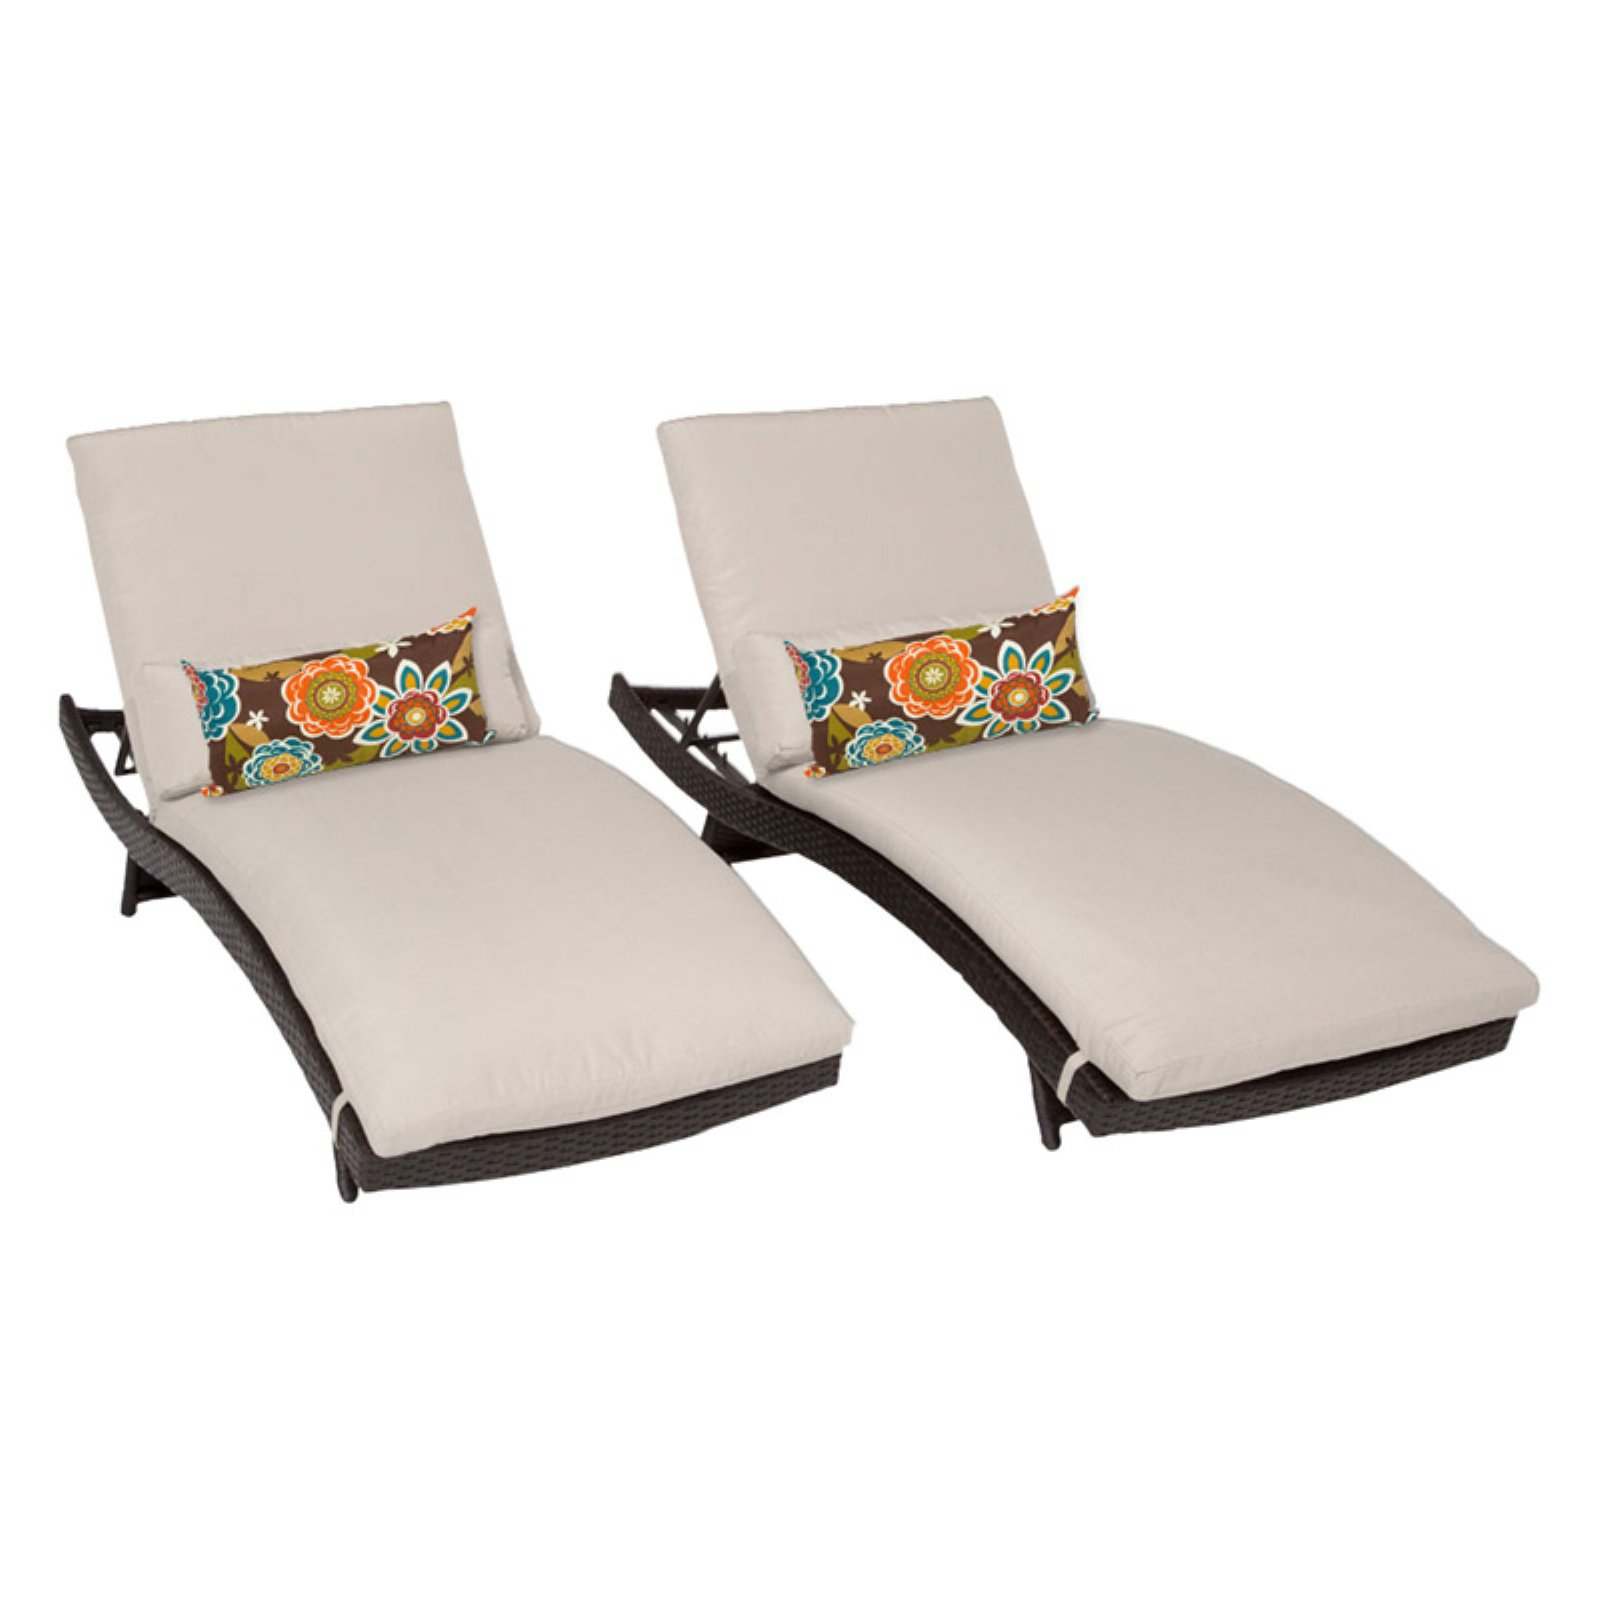 TK Classics Bali Adjustable Outdoor Chaise Lounge - Set of 2 Chairs and Cushion Covers